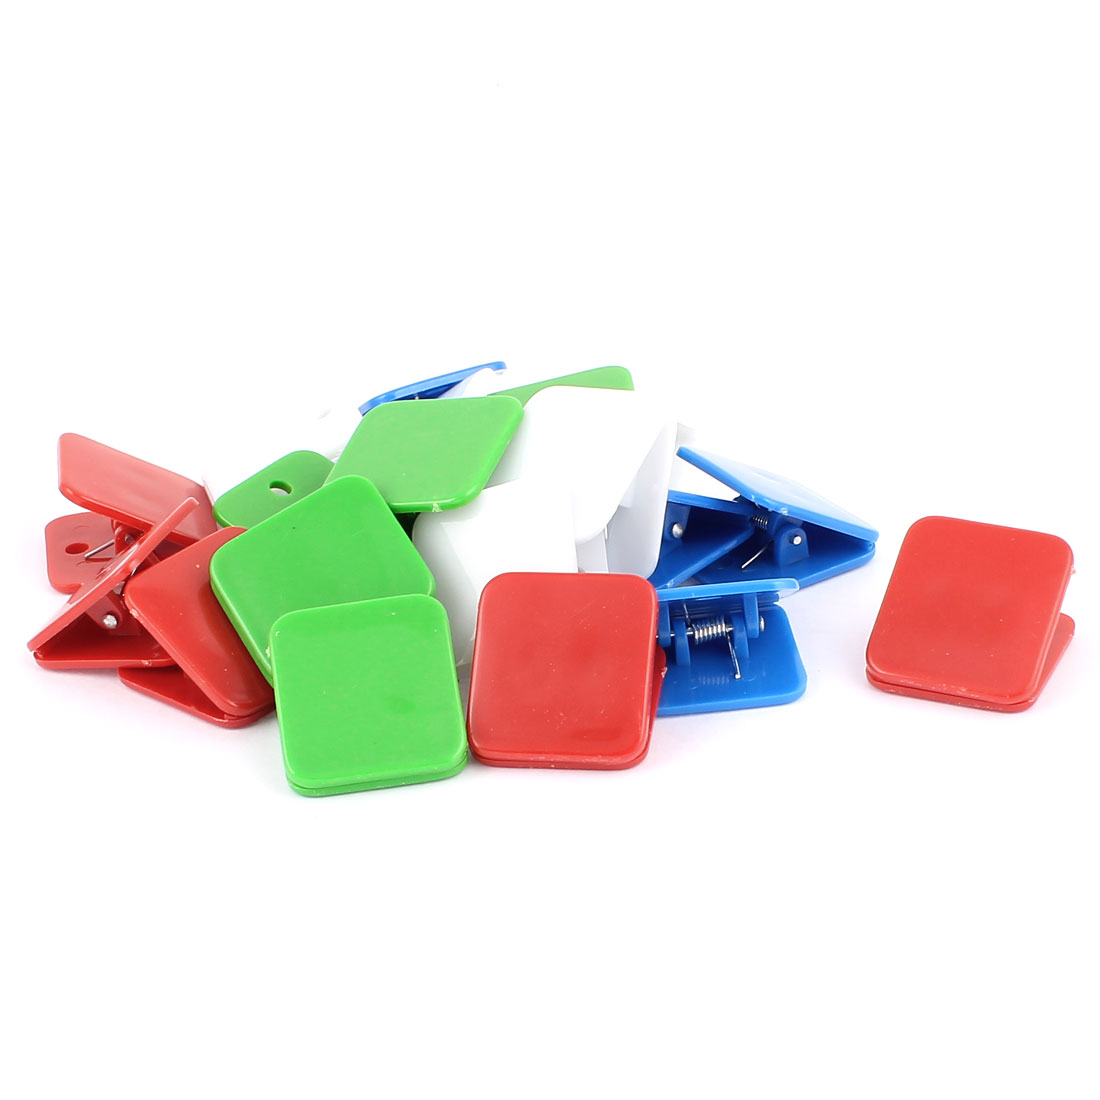 Office School Plastic Spring Loaded Paper Document File Memo Stationery Binder Clip Assorted Color 20pcs